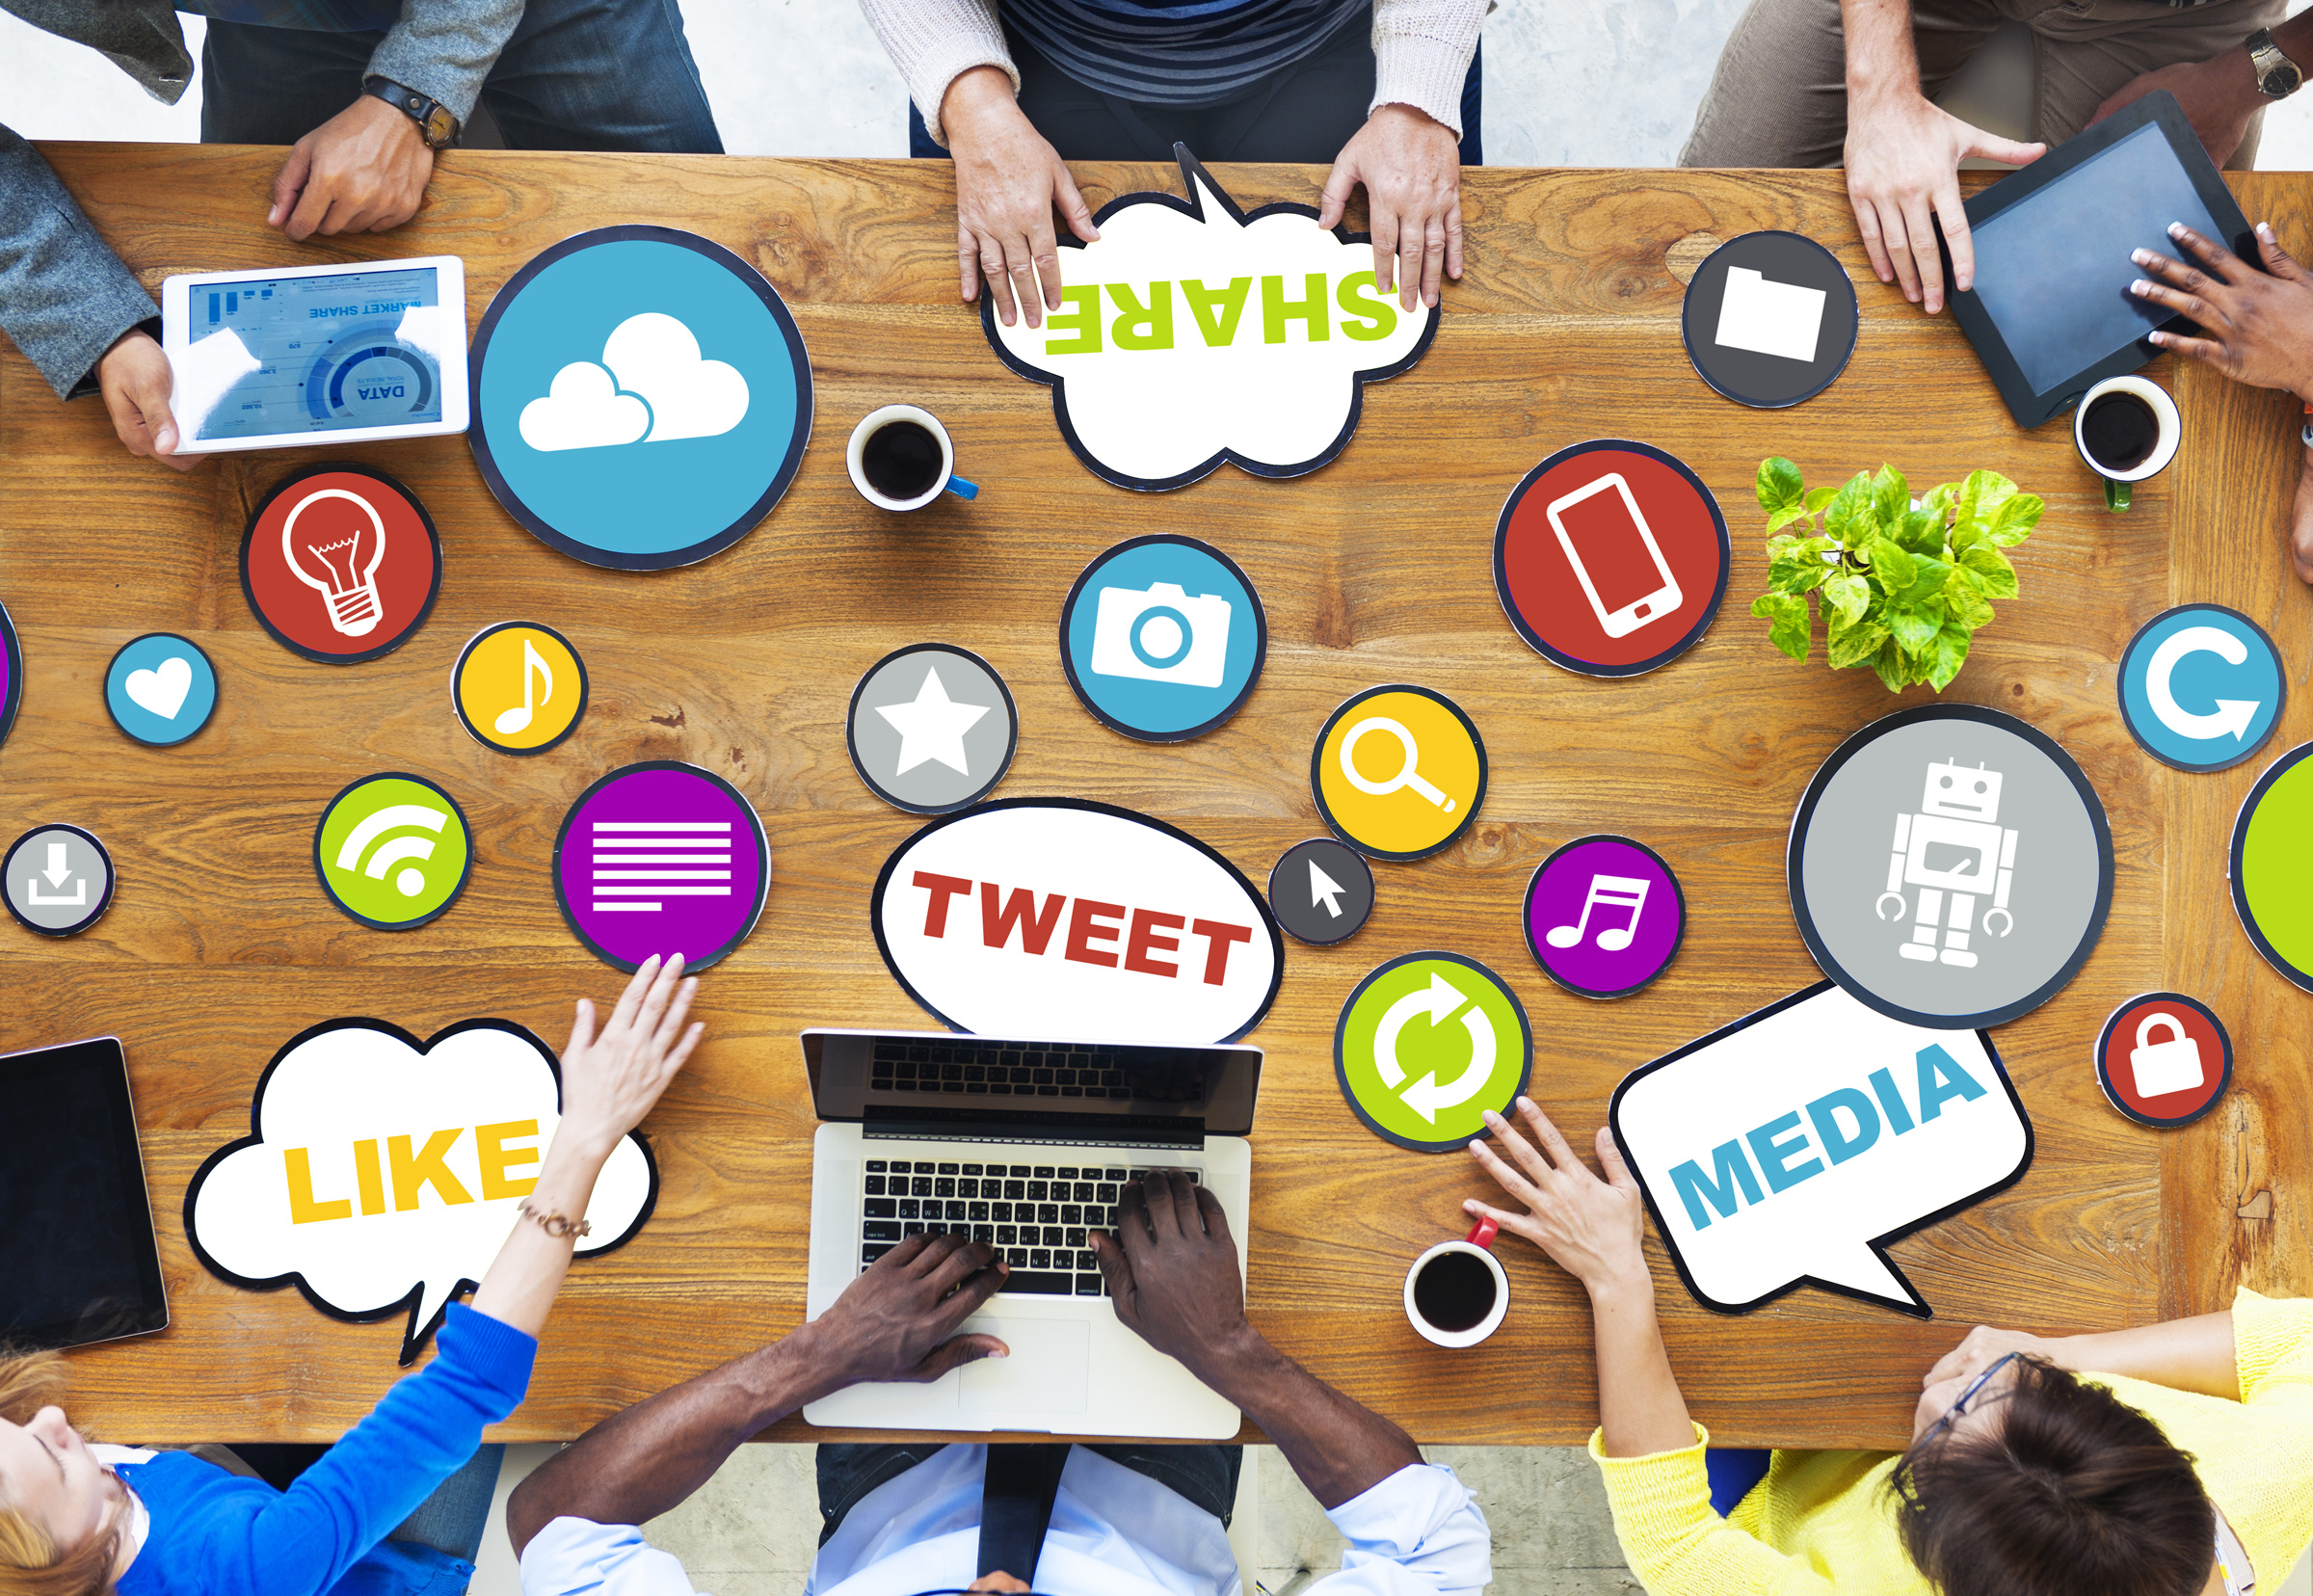 5 Social Media Marketing Tips